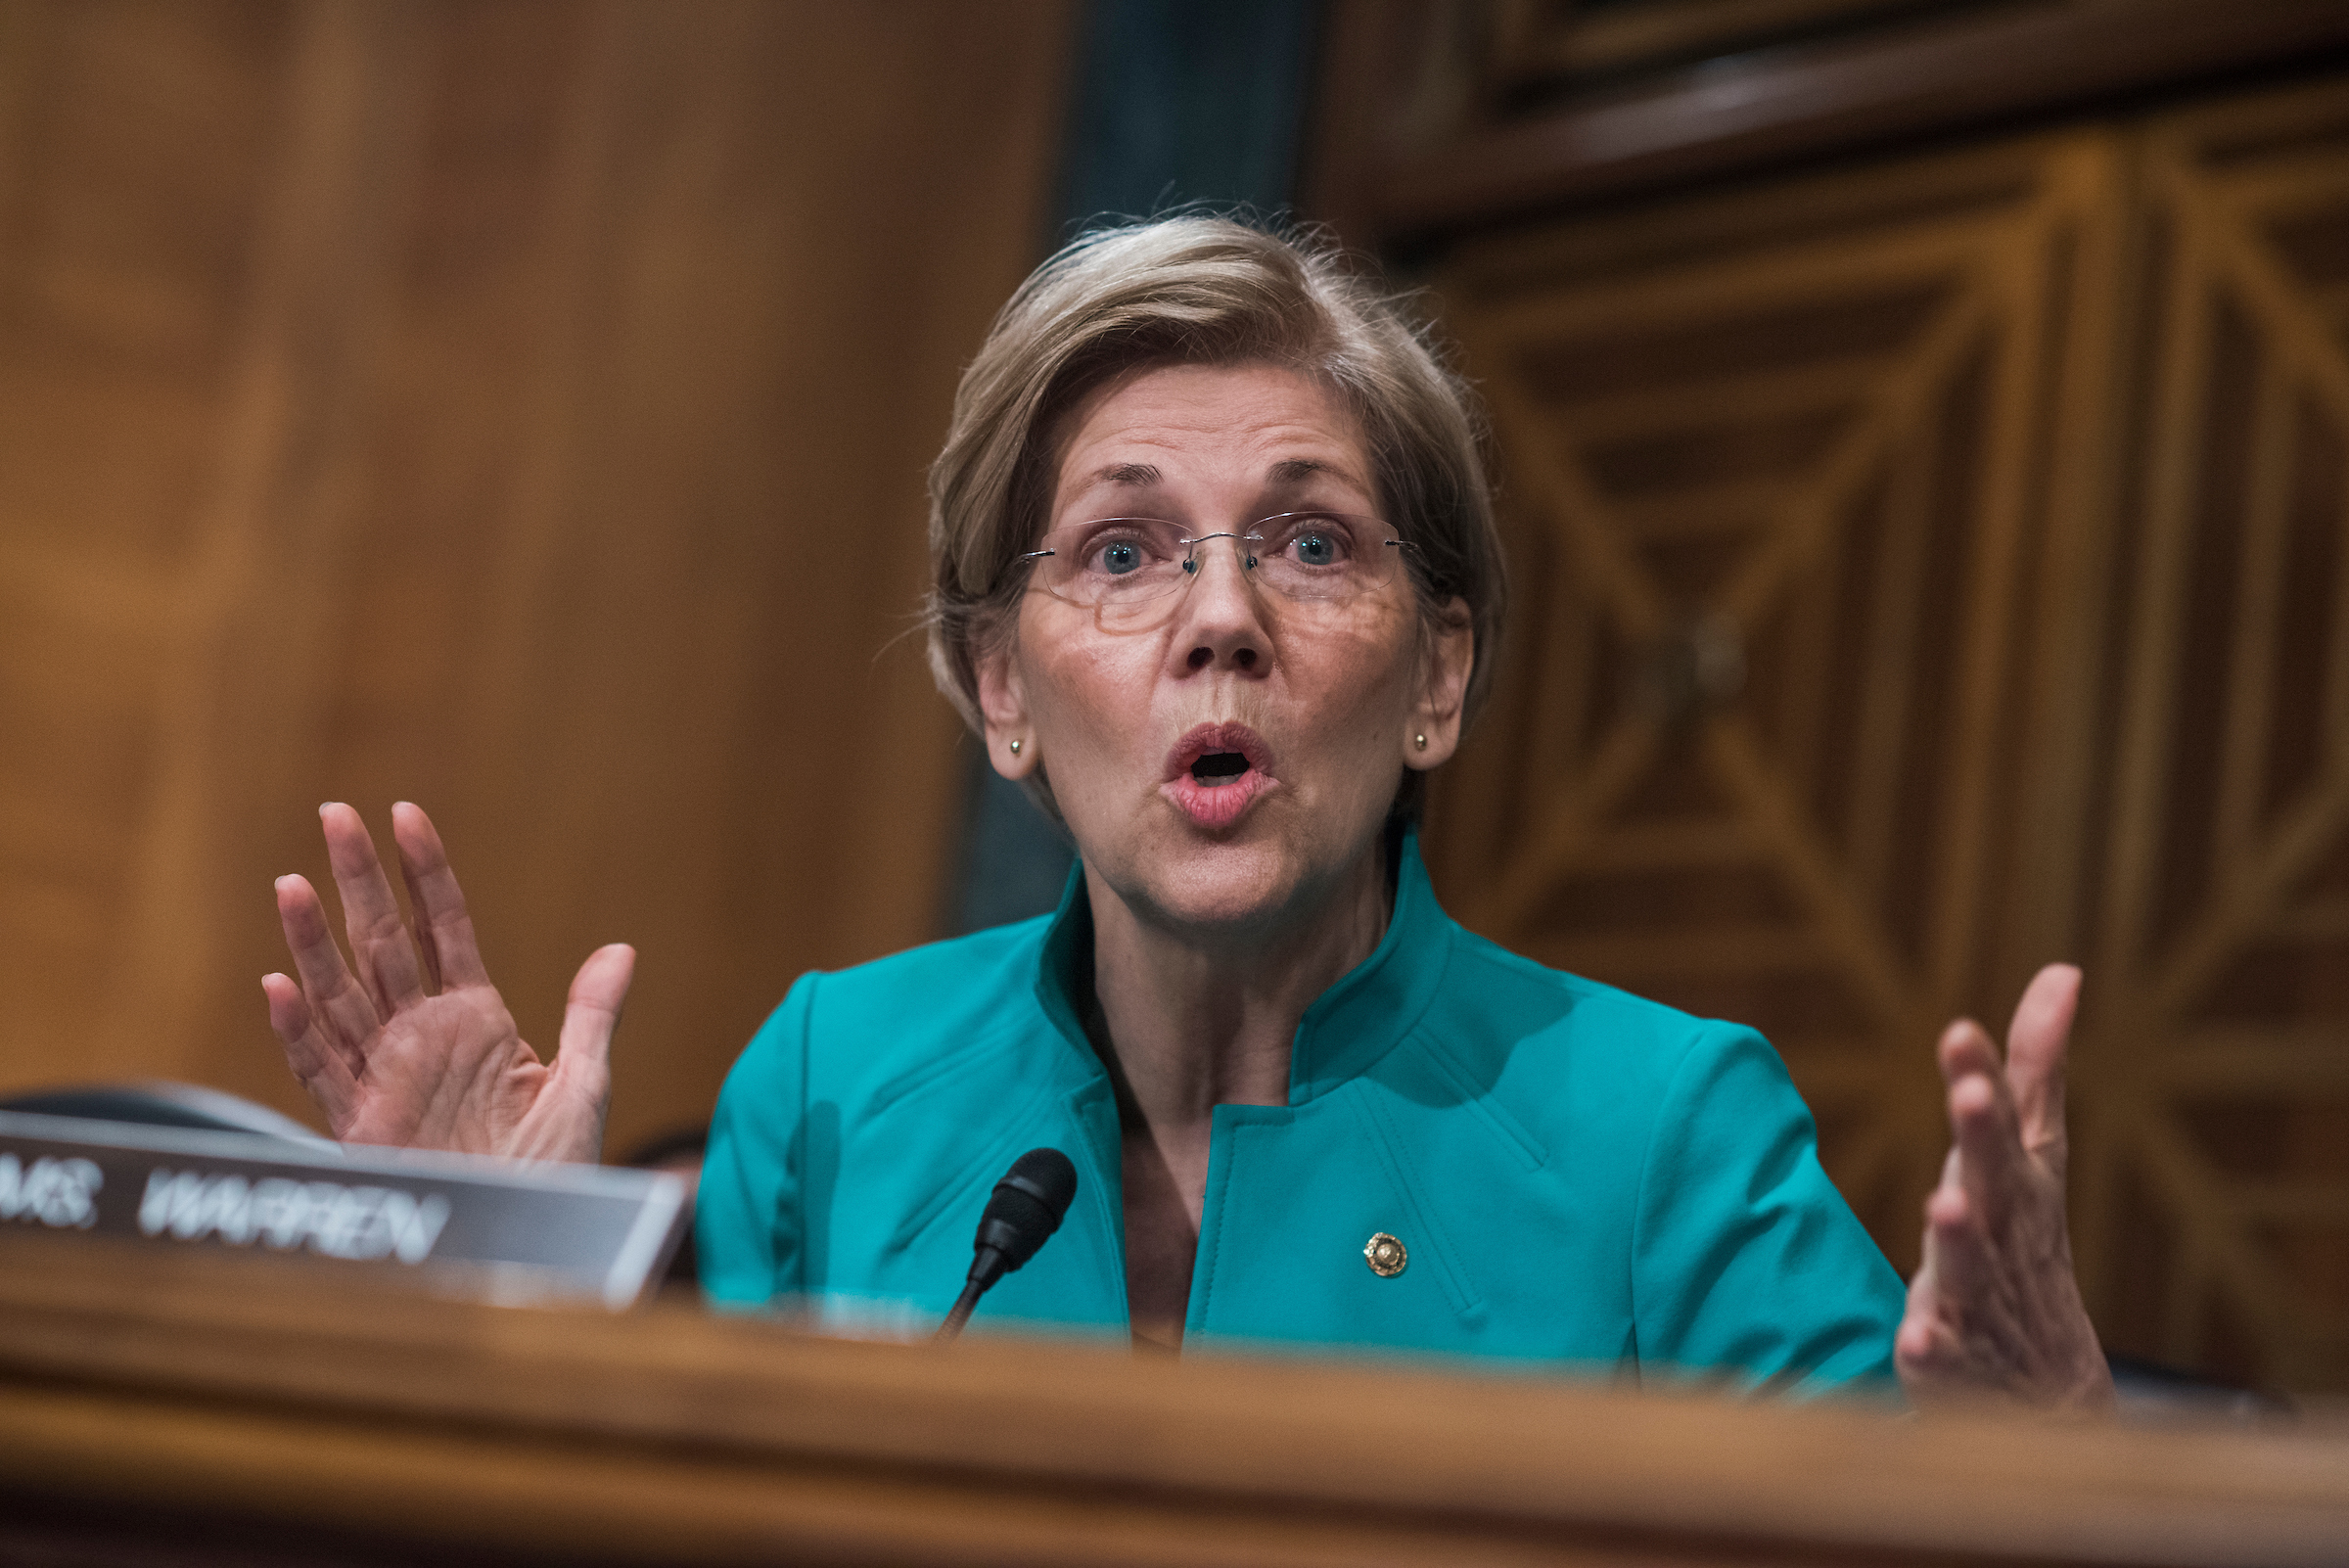 Sen. Elizabeth Warren, D-Mass., questions Mnuchin on Thursday. (Tom Williams/CQ Roll Call)